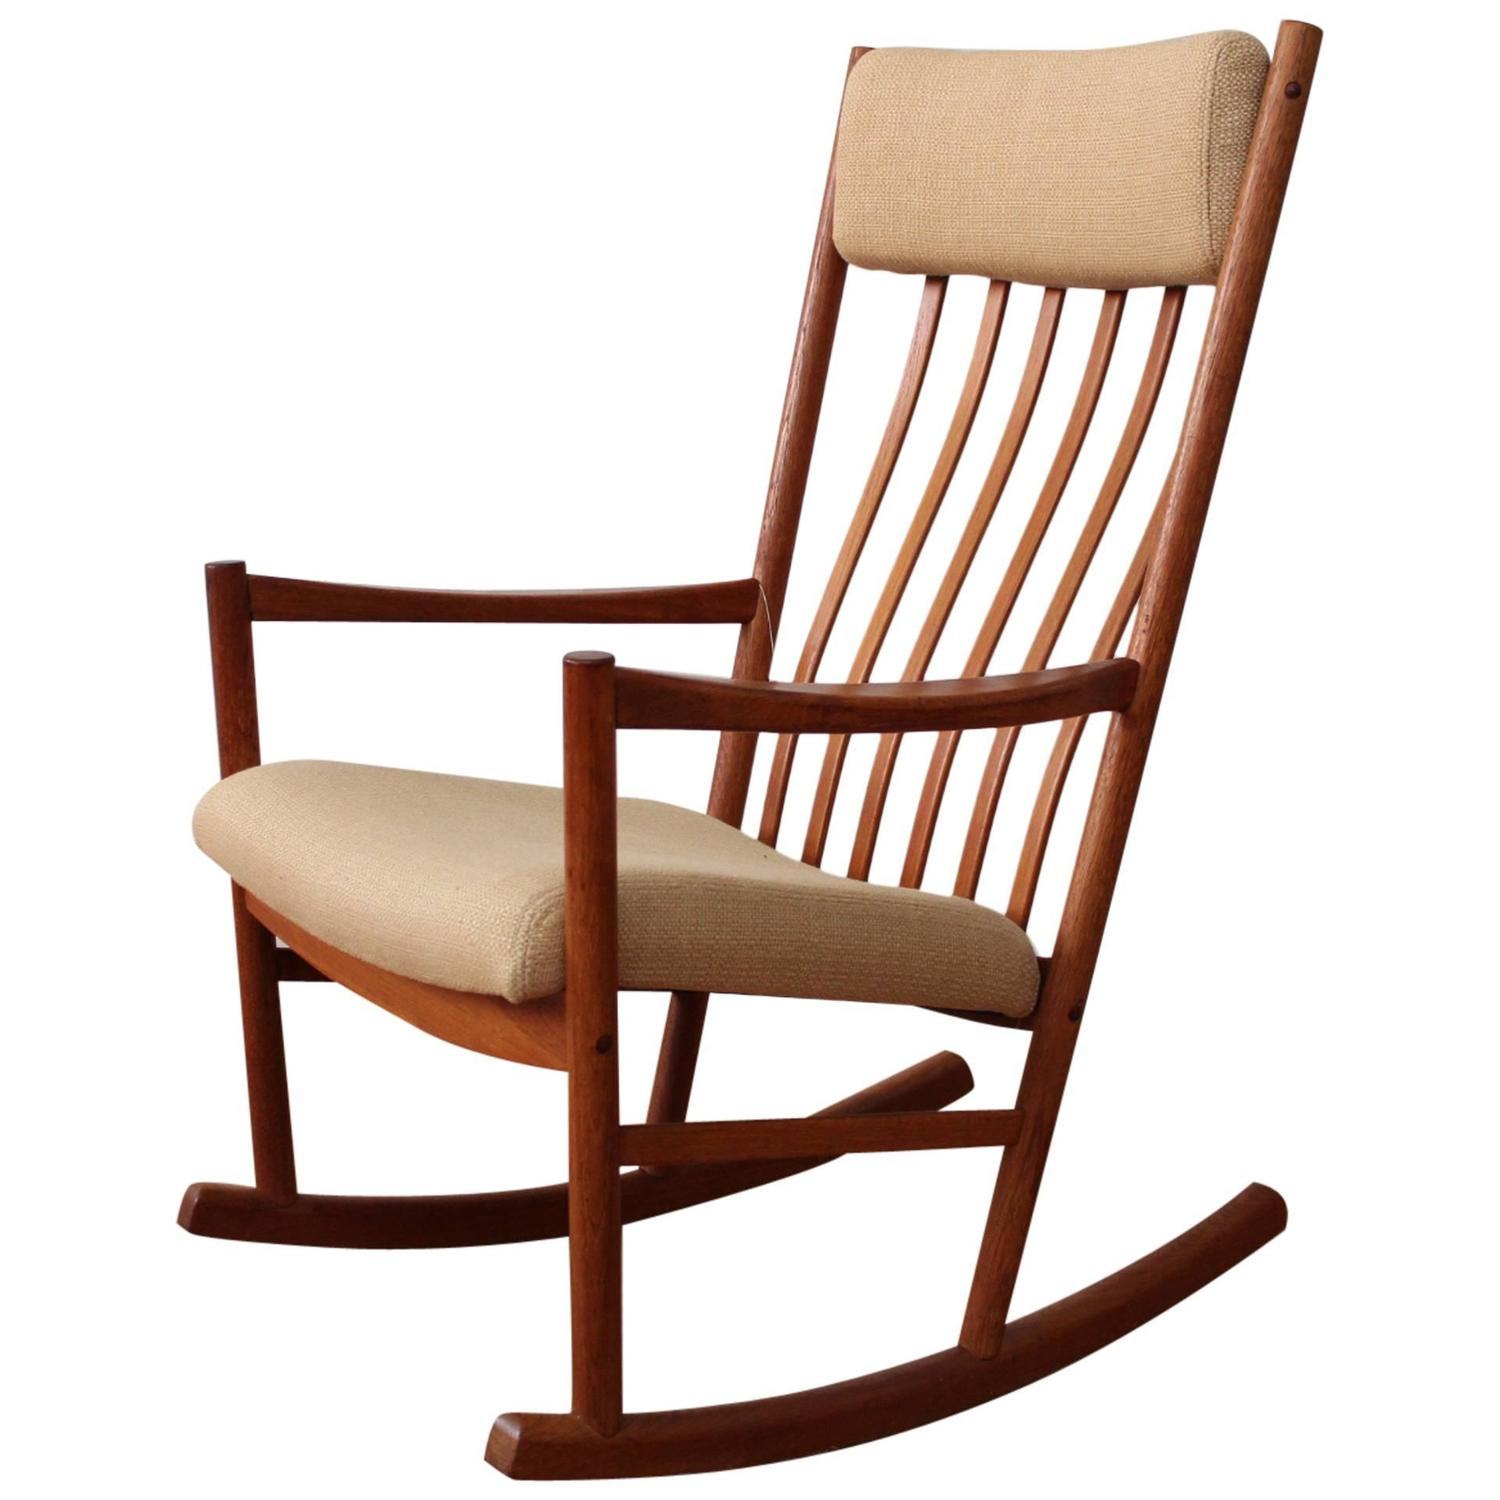 Danish Modern Teak Rocking Chair At 1stdibs